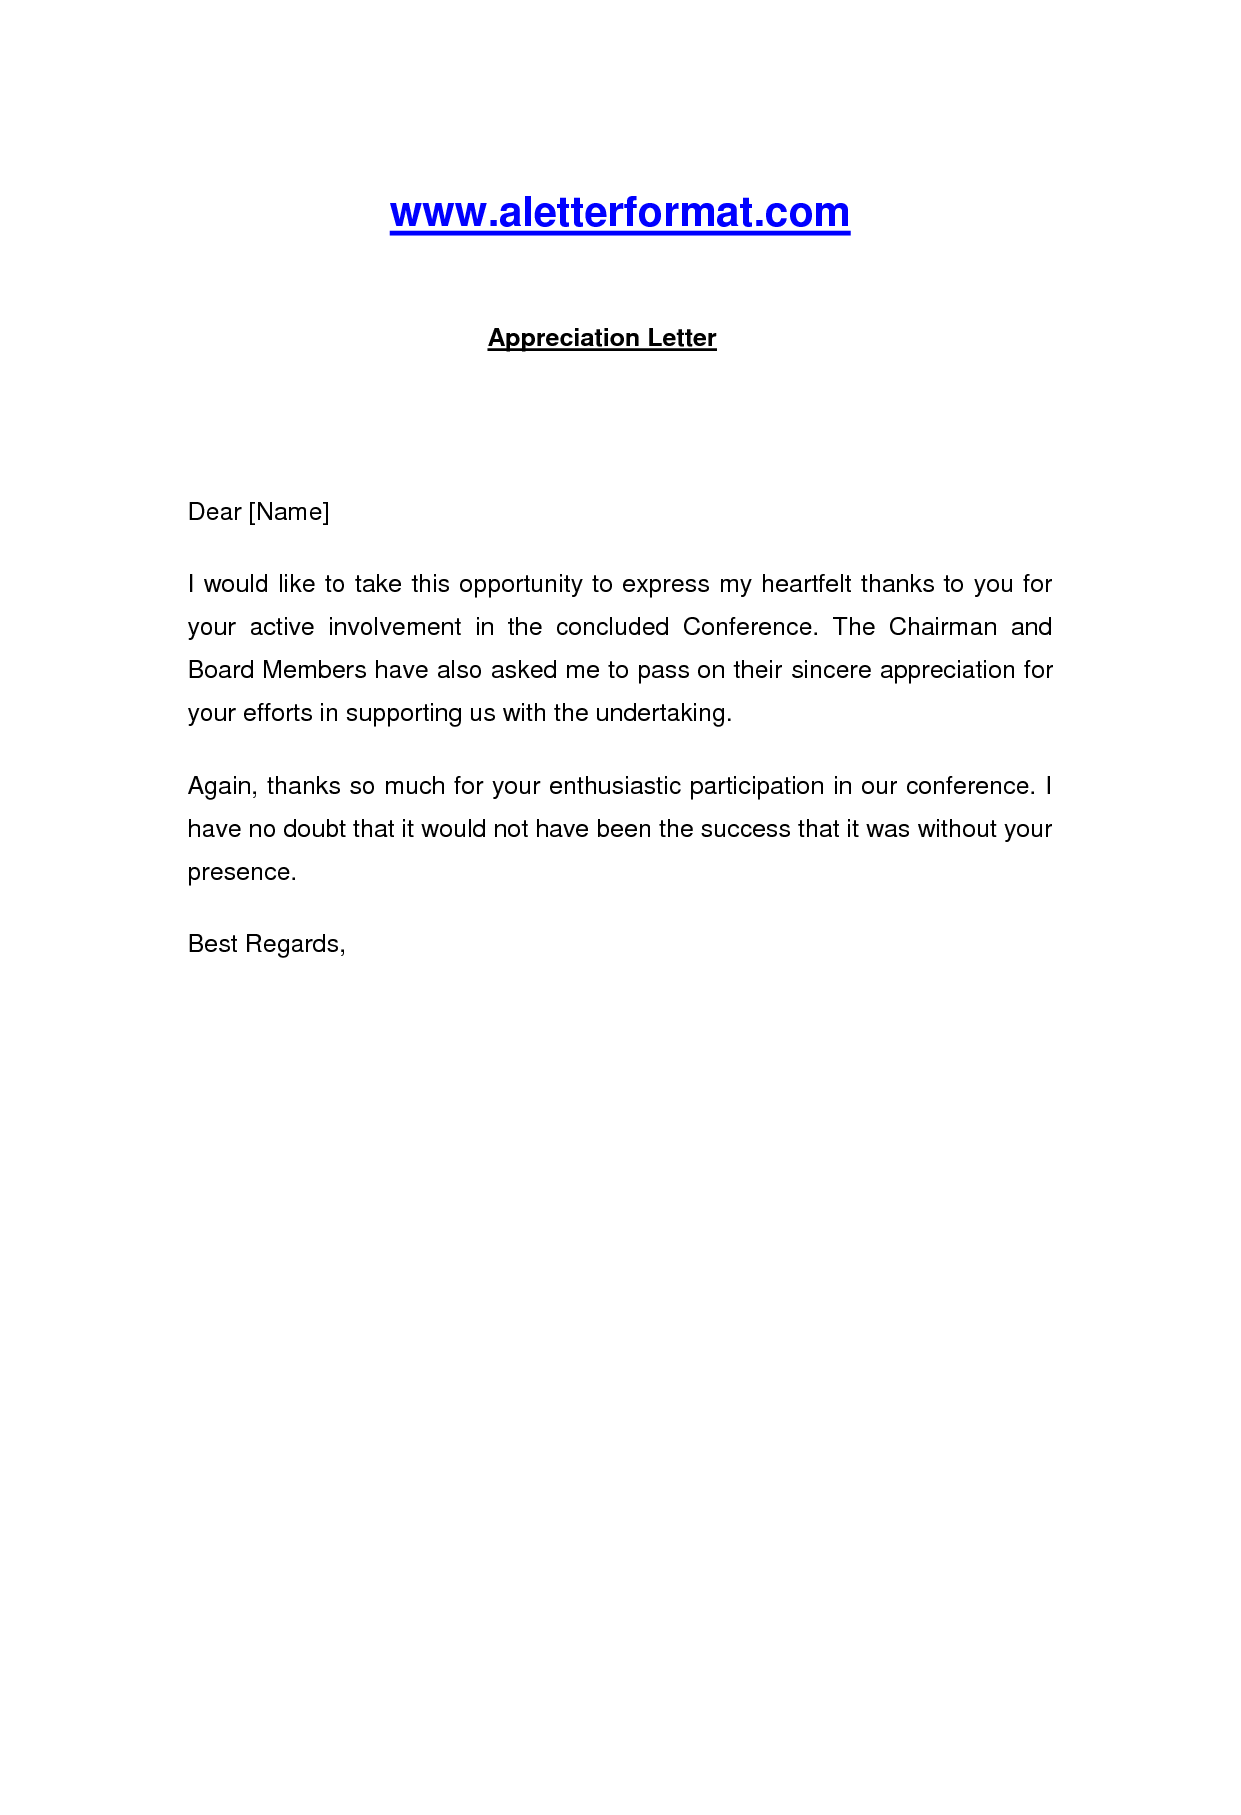 Appreciation Letter  Appreciation Letter For Active Involvement